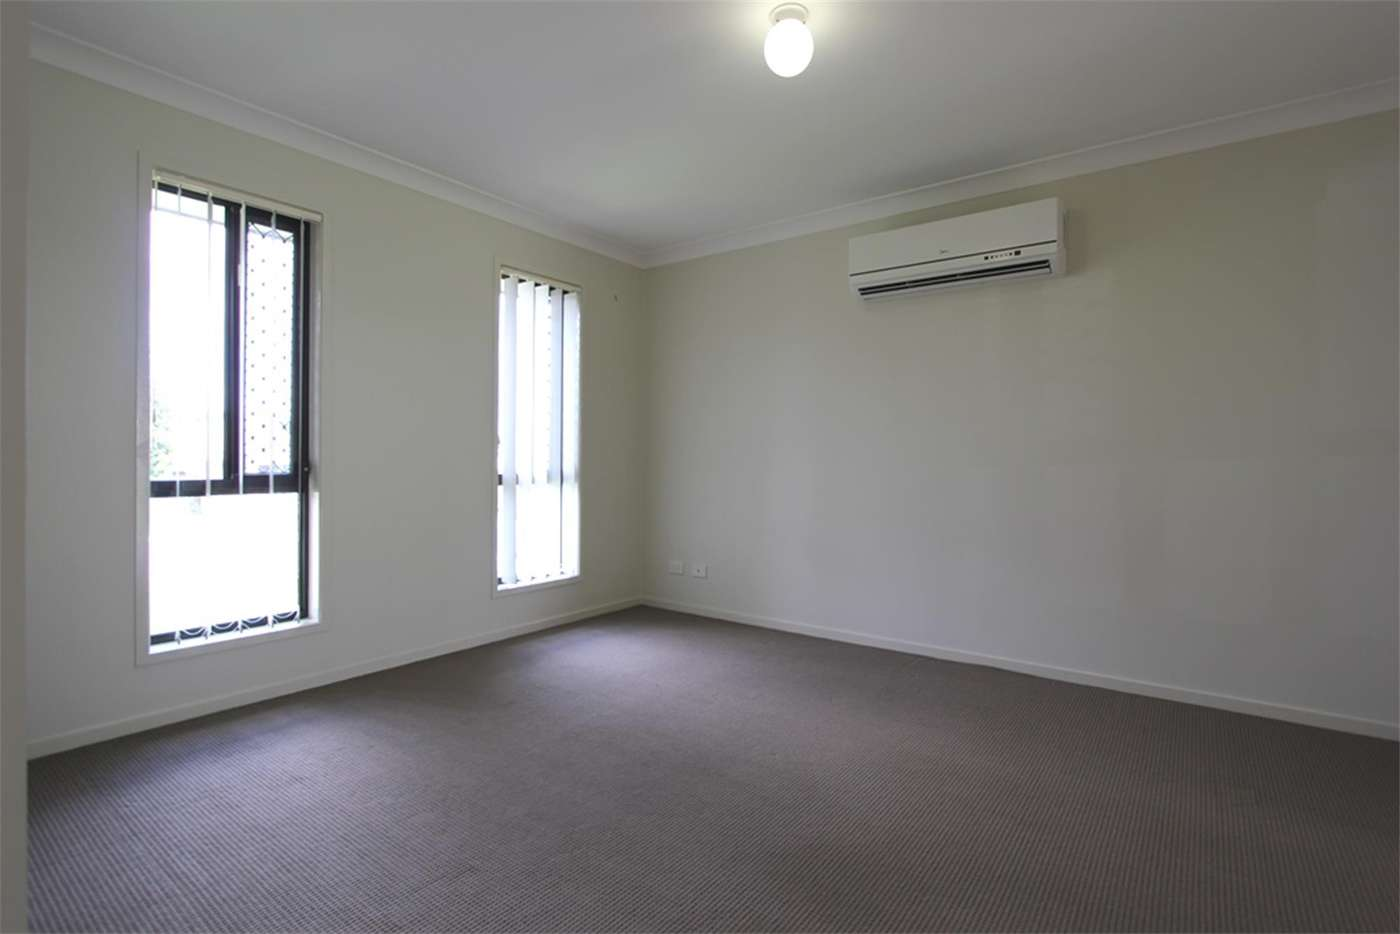 Fifth view of Homely house listing, 5 Kolora St, Marsden QLD 4132